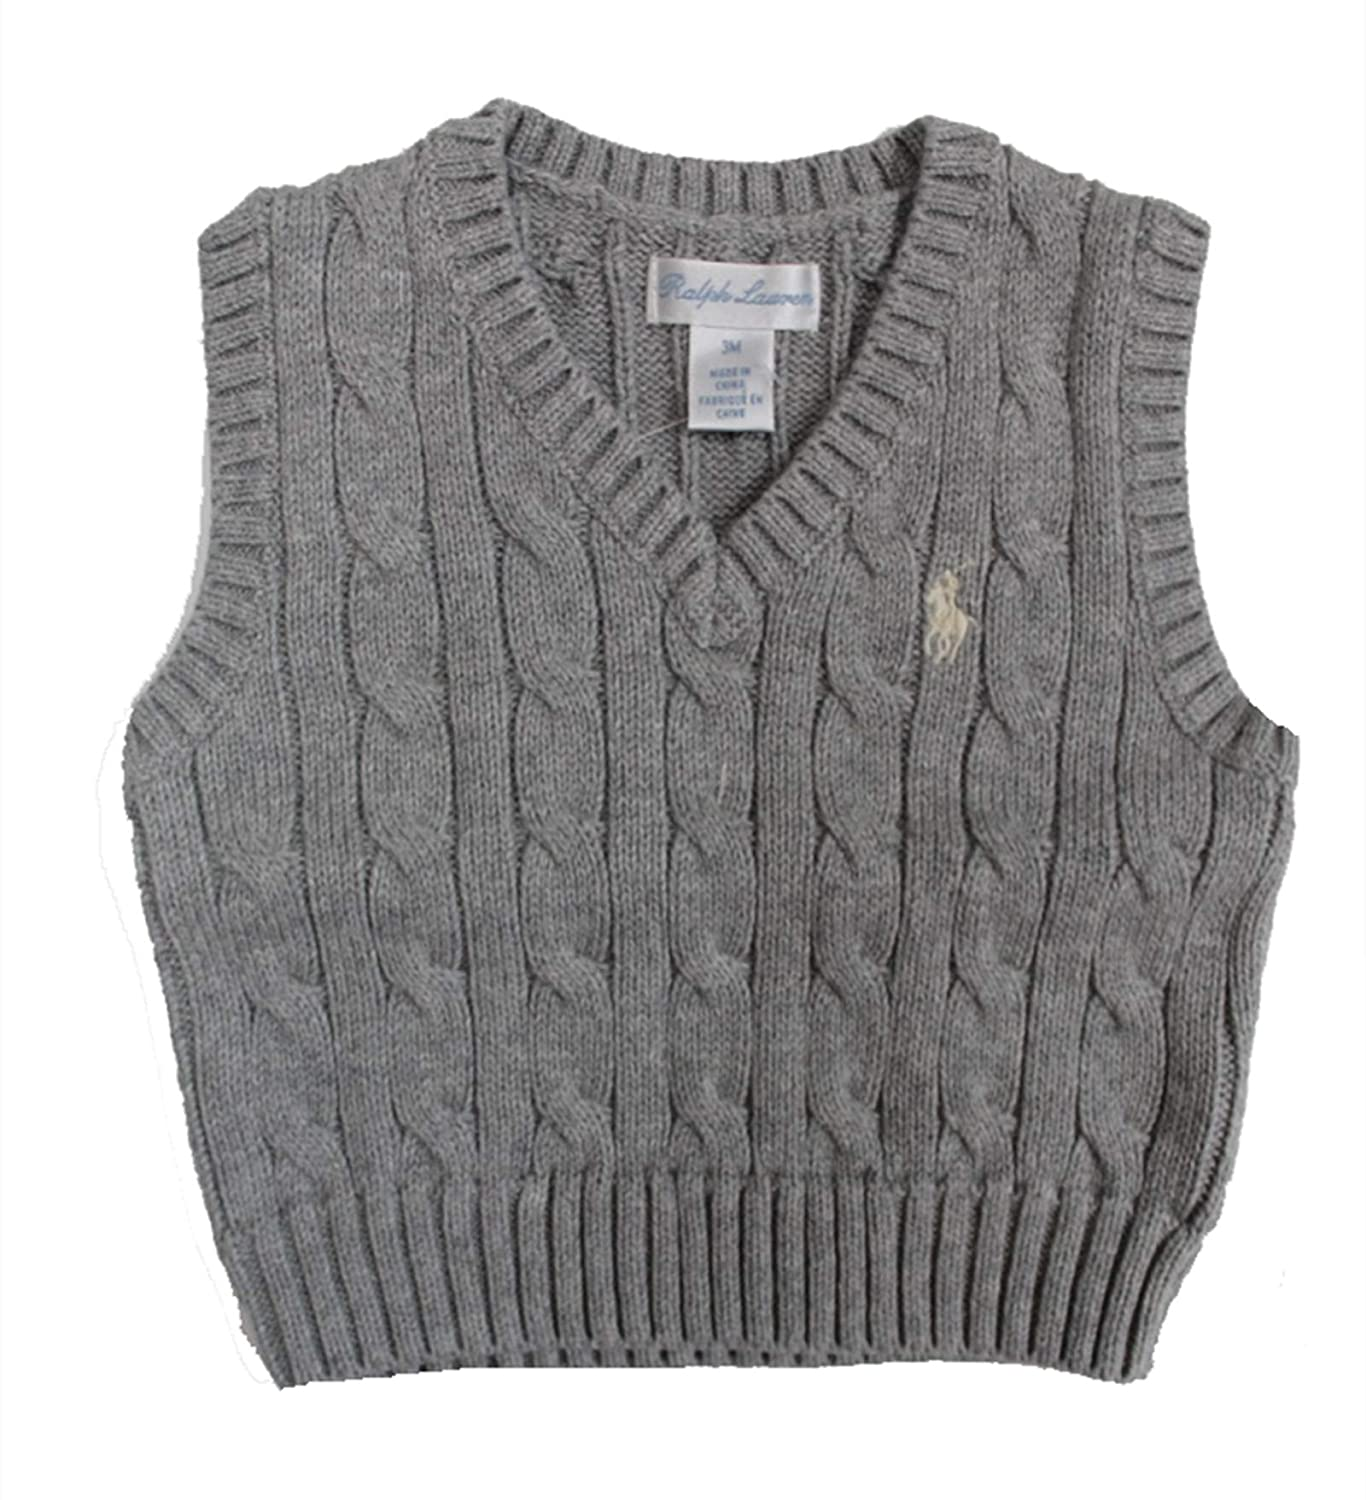 RALPH LAUREN Baby Boy Cable-Knit Cotton Sweater Vest 3 Month Andover Heather